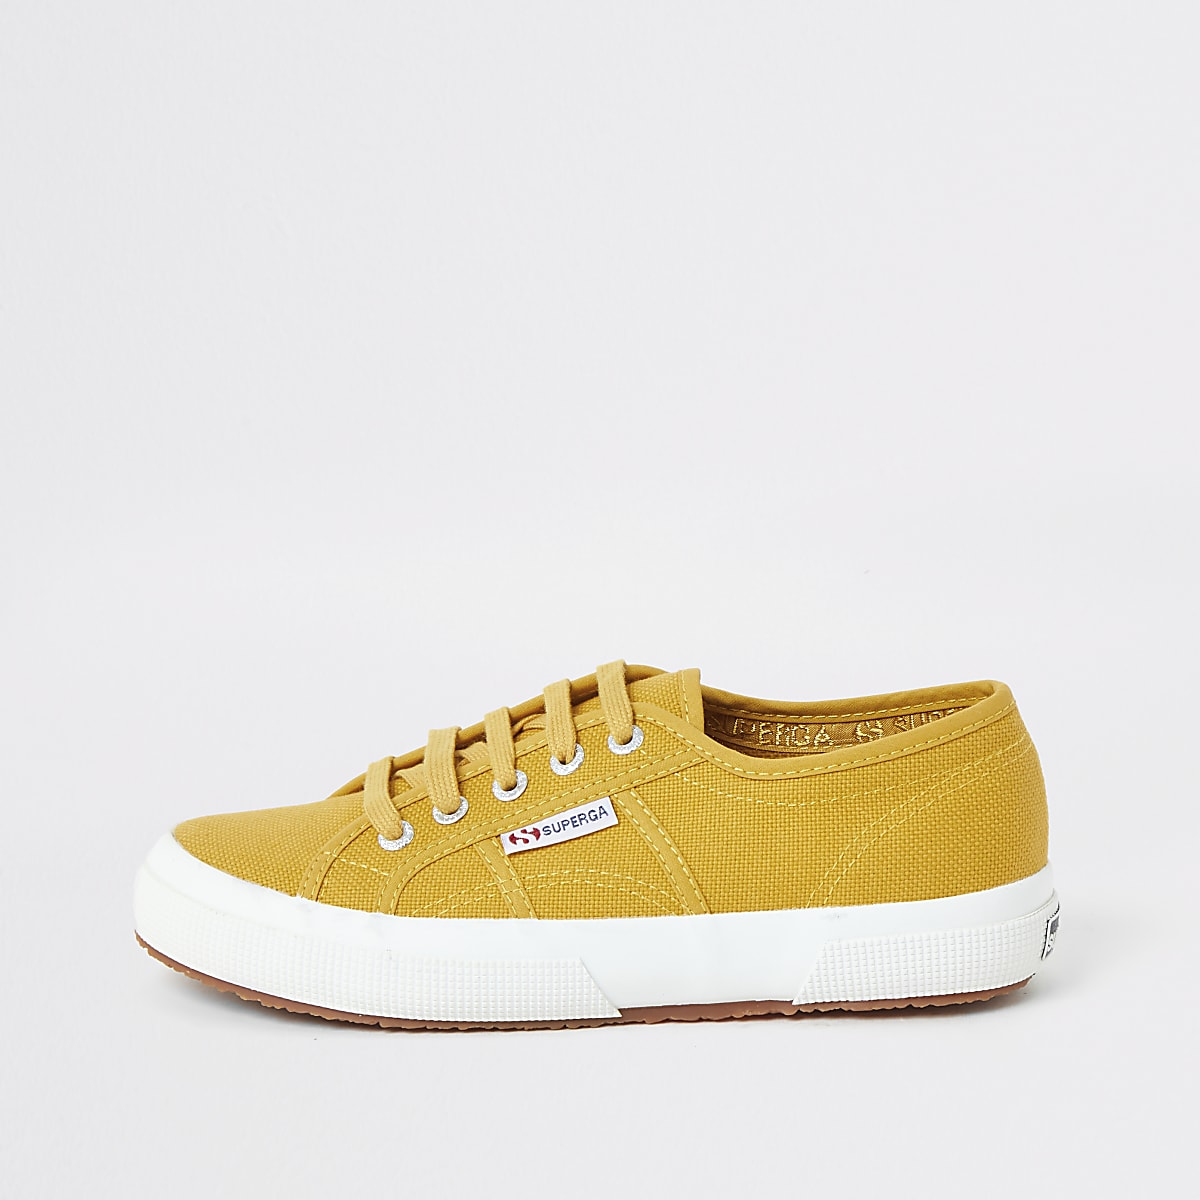 Superga yellow lace-up canvas trainers